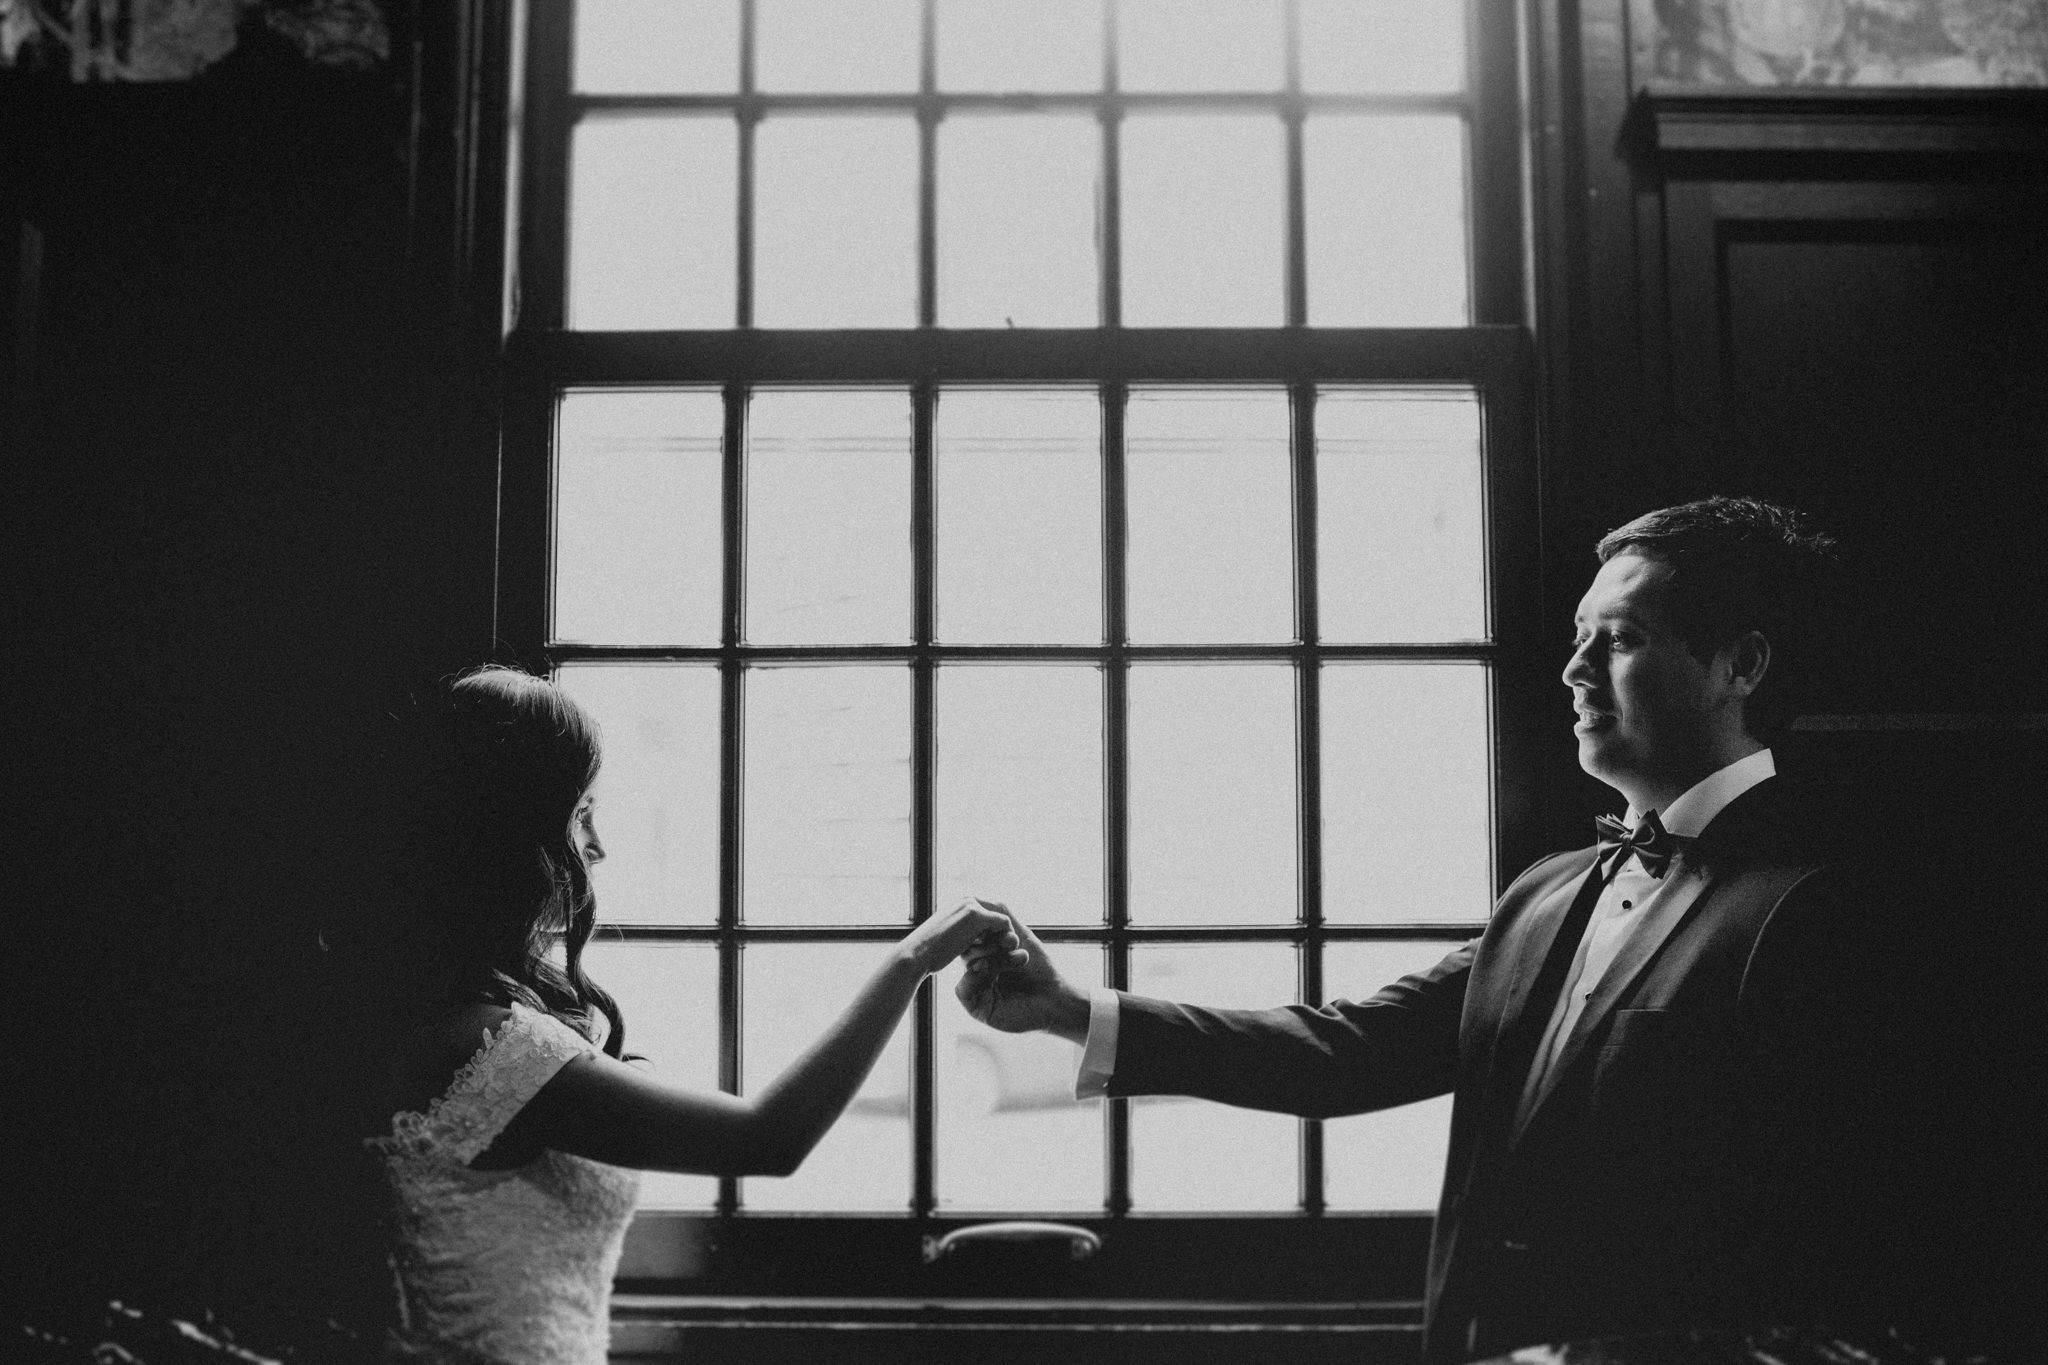 Bride and groom stand in front of a bright window and playfully hold handss